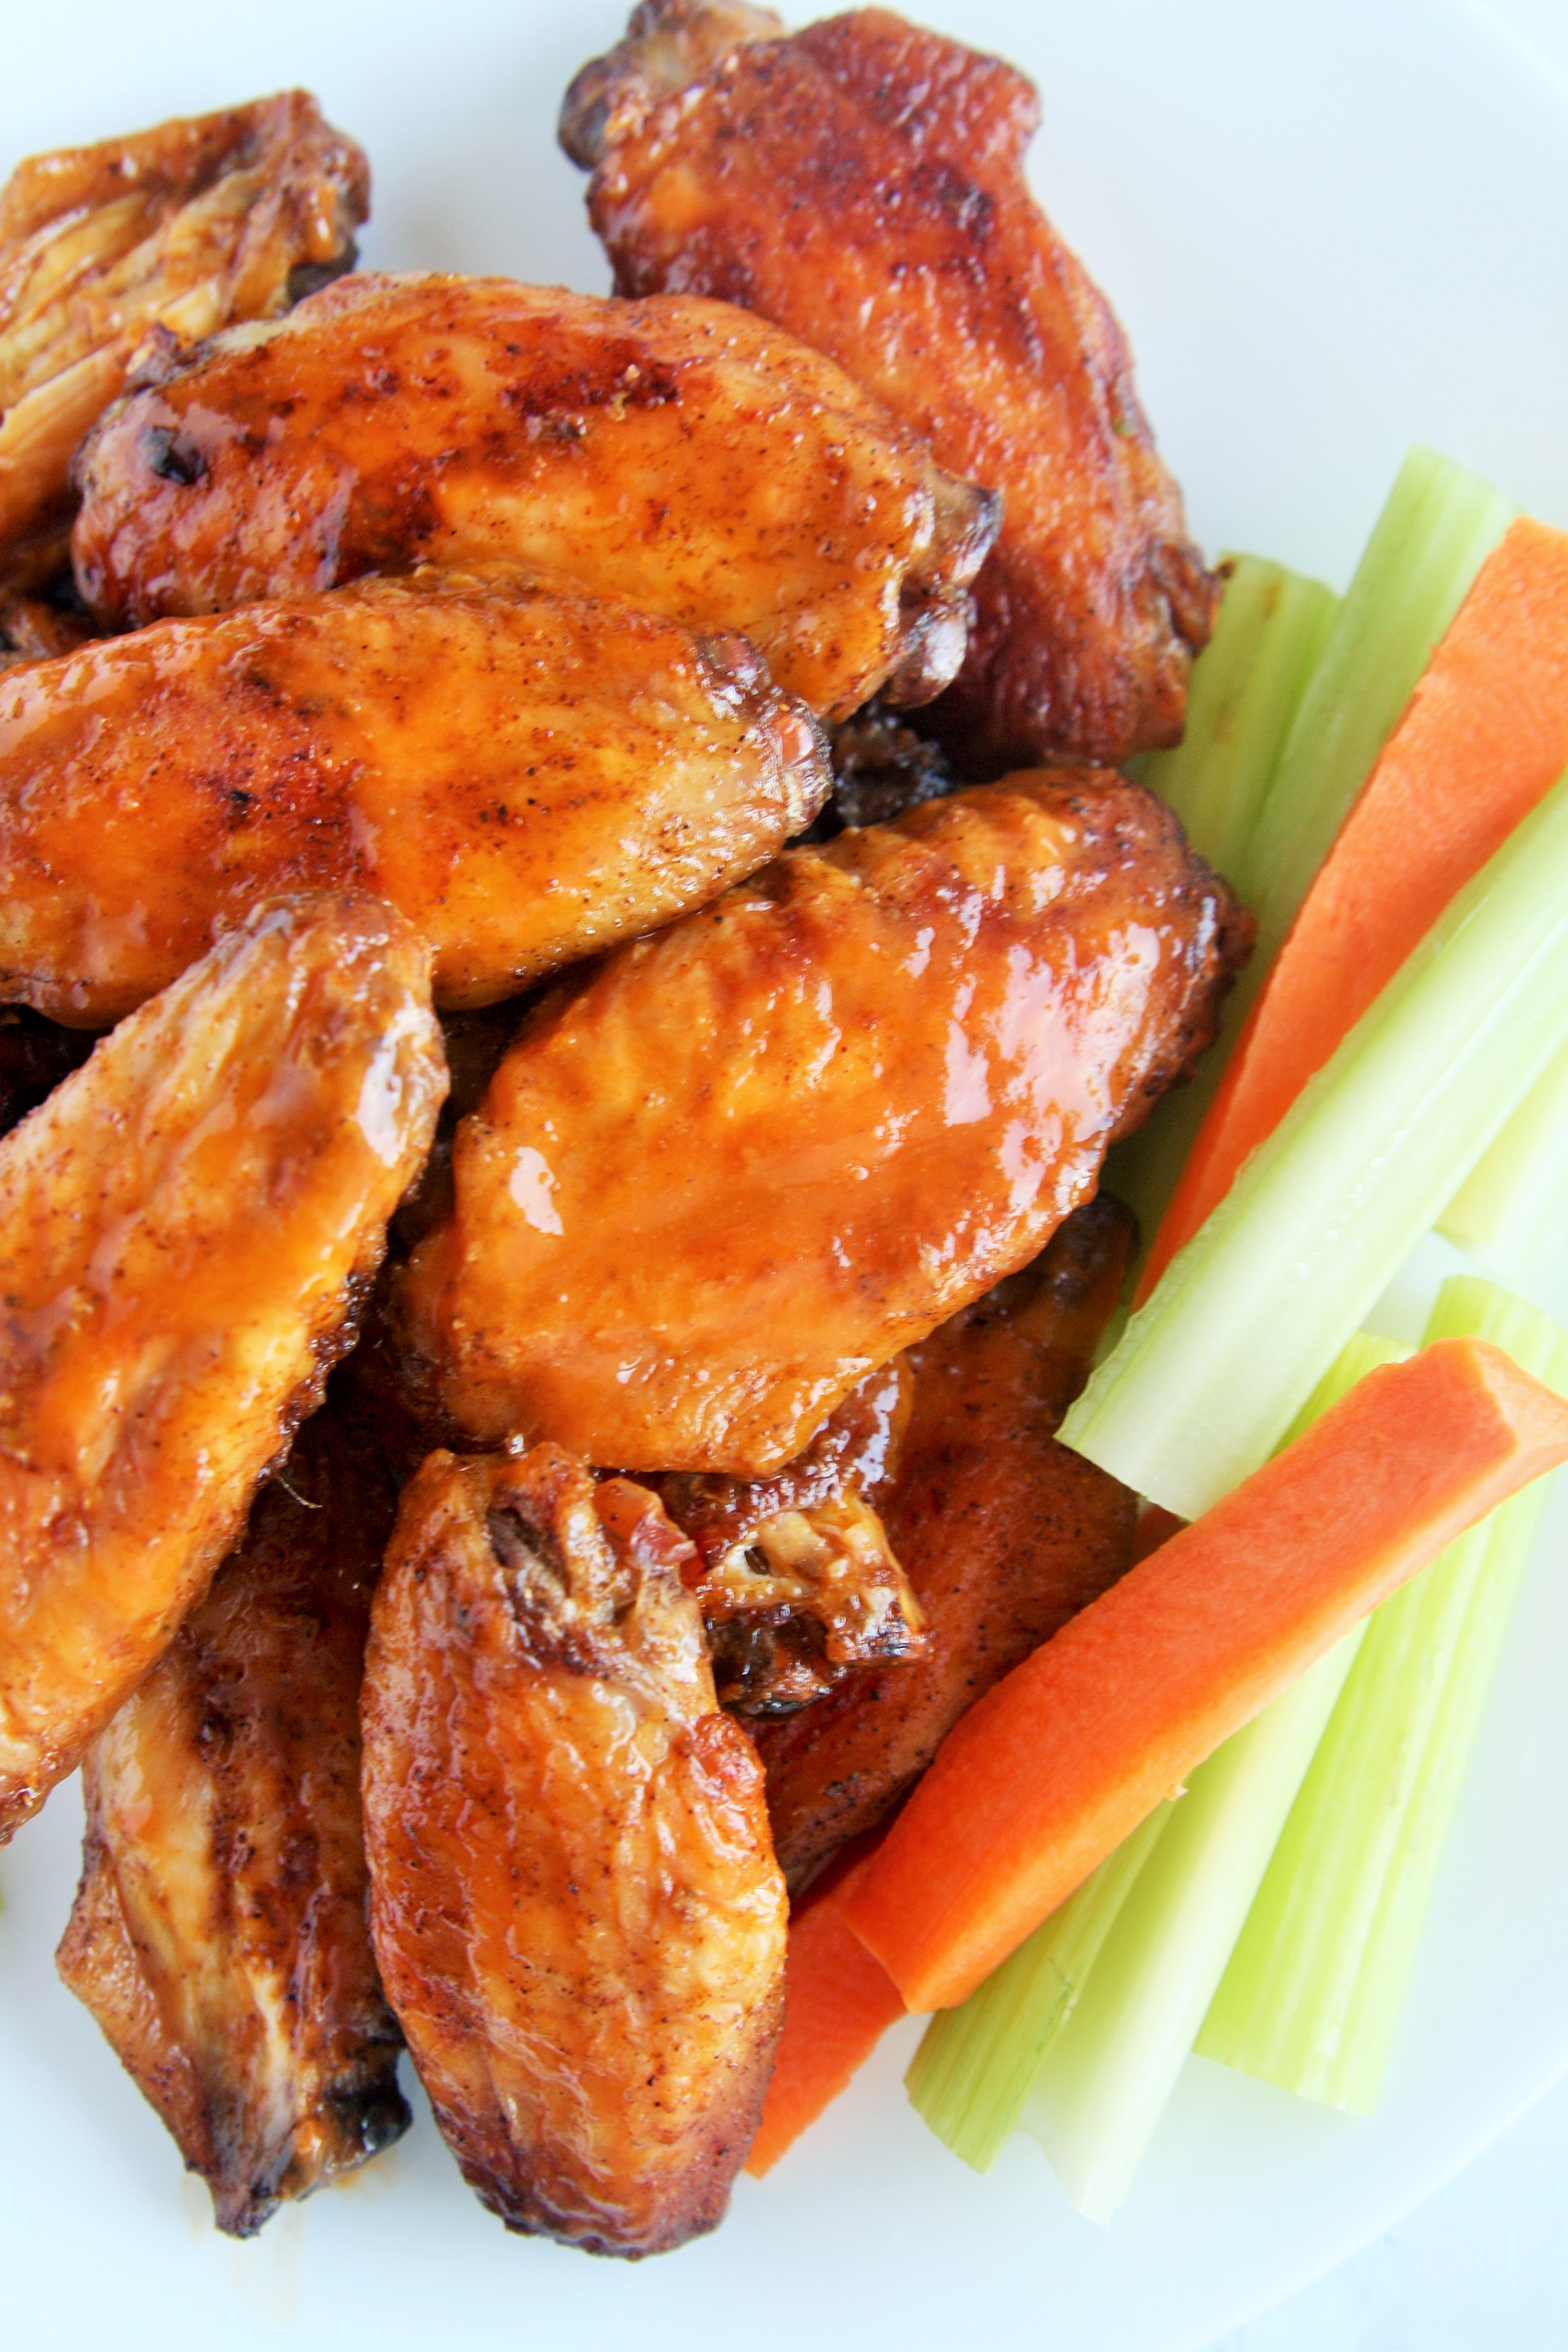 Baked Buffalo Wings The Tasty Bite